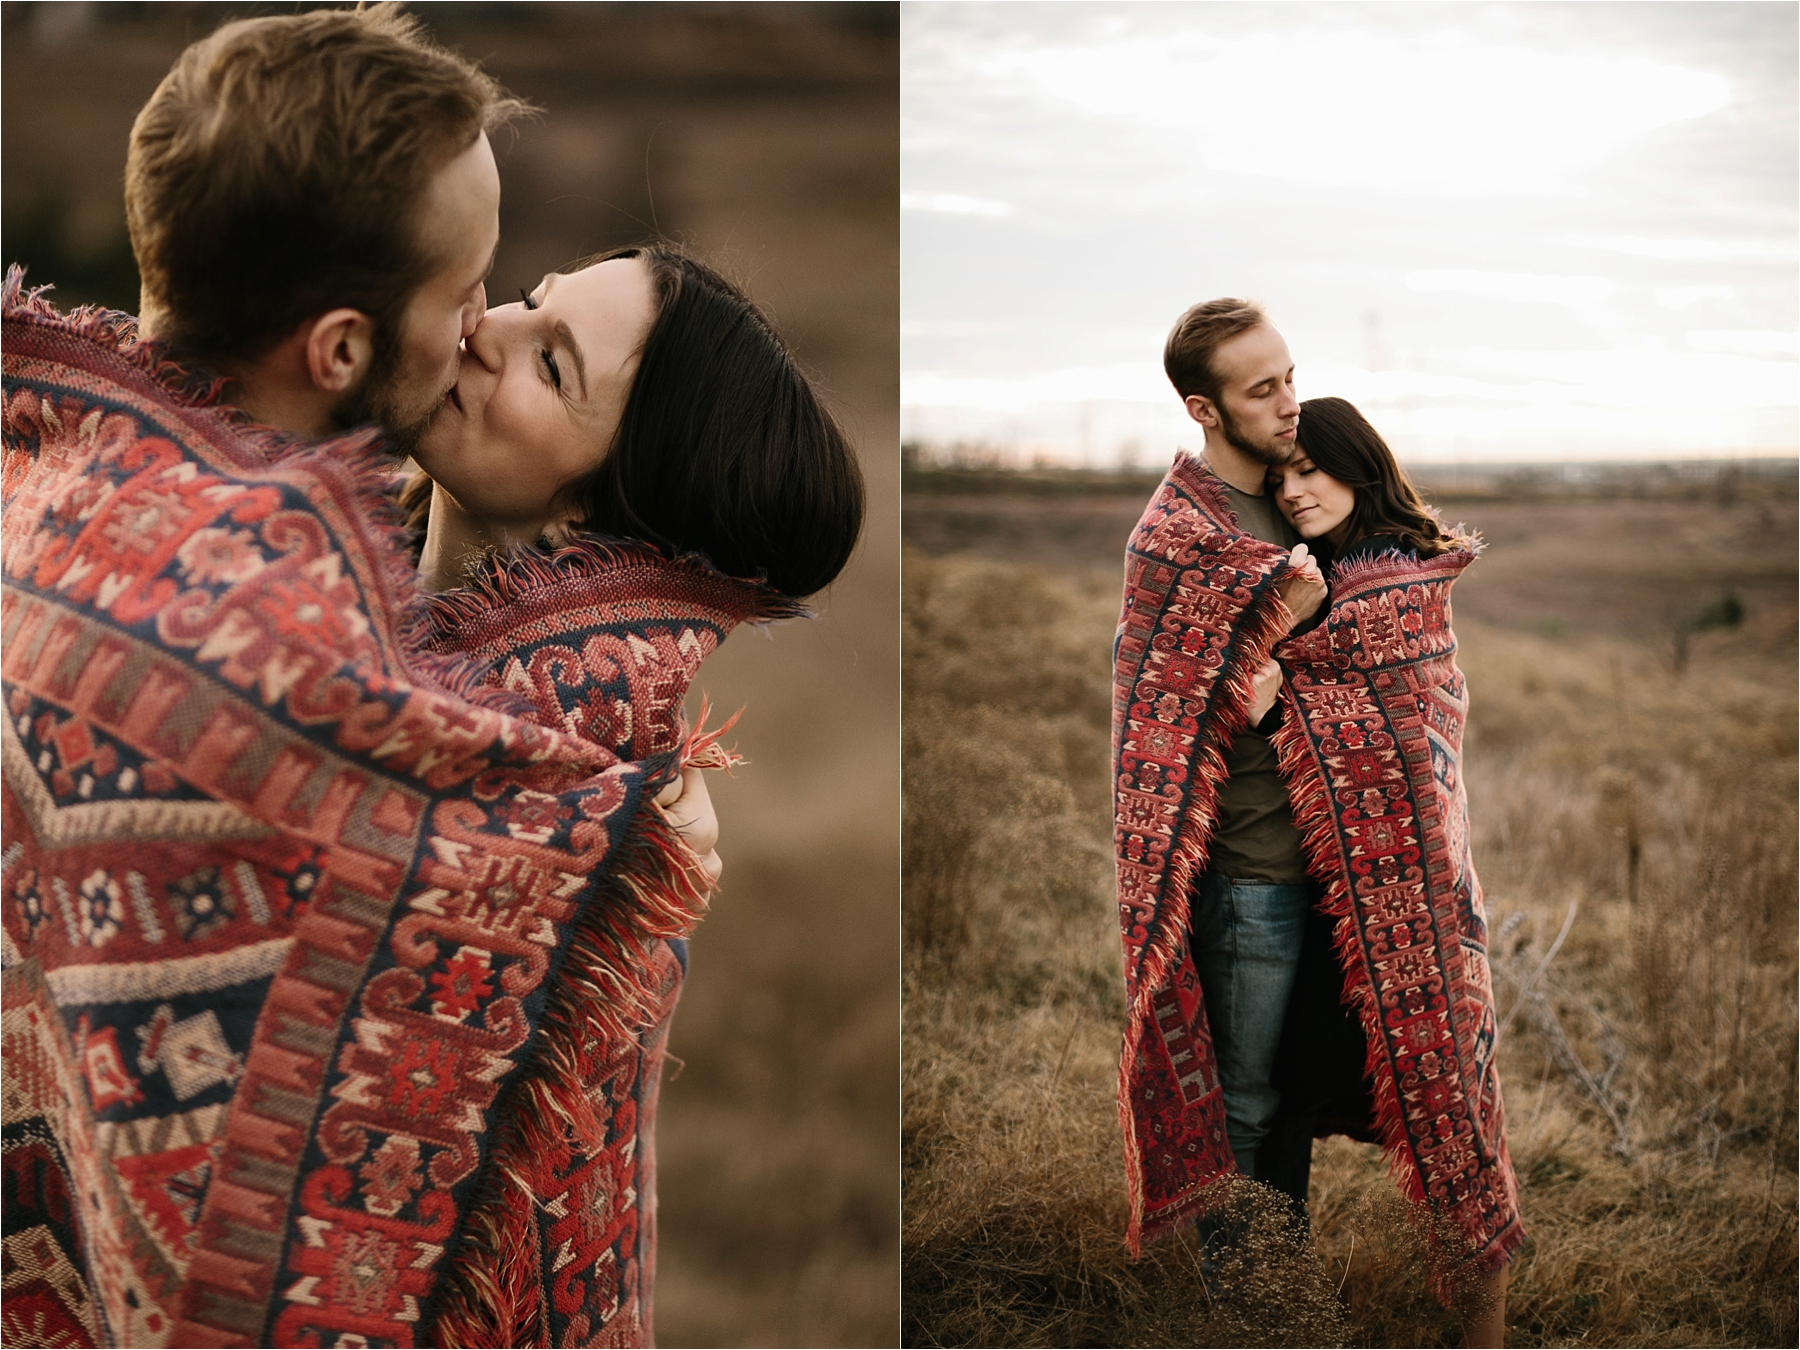 Trey + Phoebe __ a playful, intimate engagement session with dark_neutral outfit inspiration by North Texas Wedding Photographer Rachel Meagan Photography __ 11